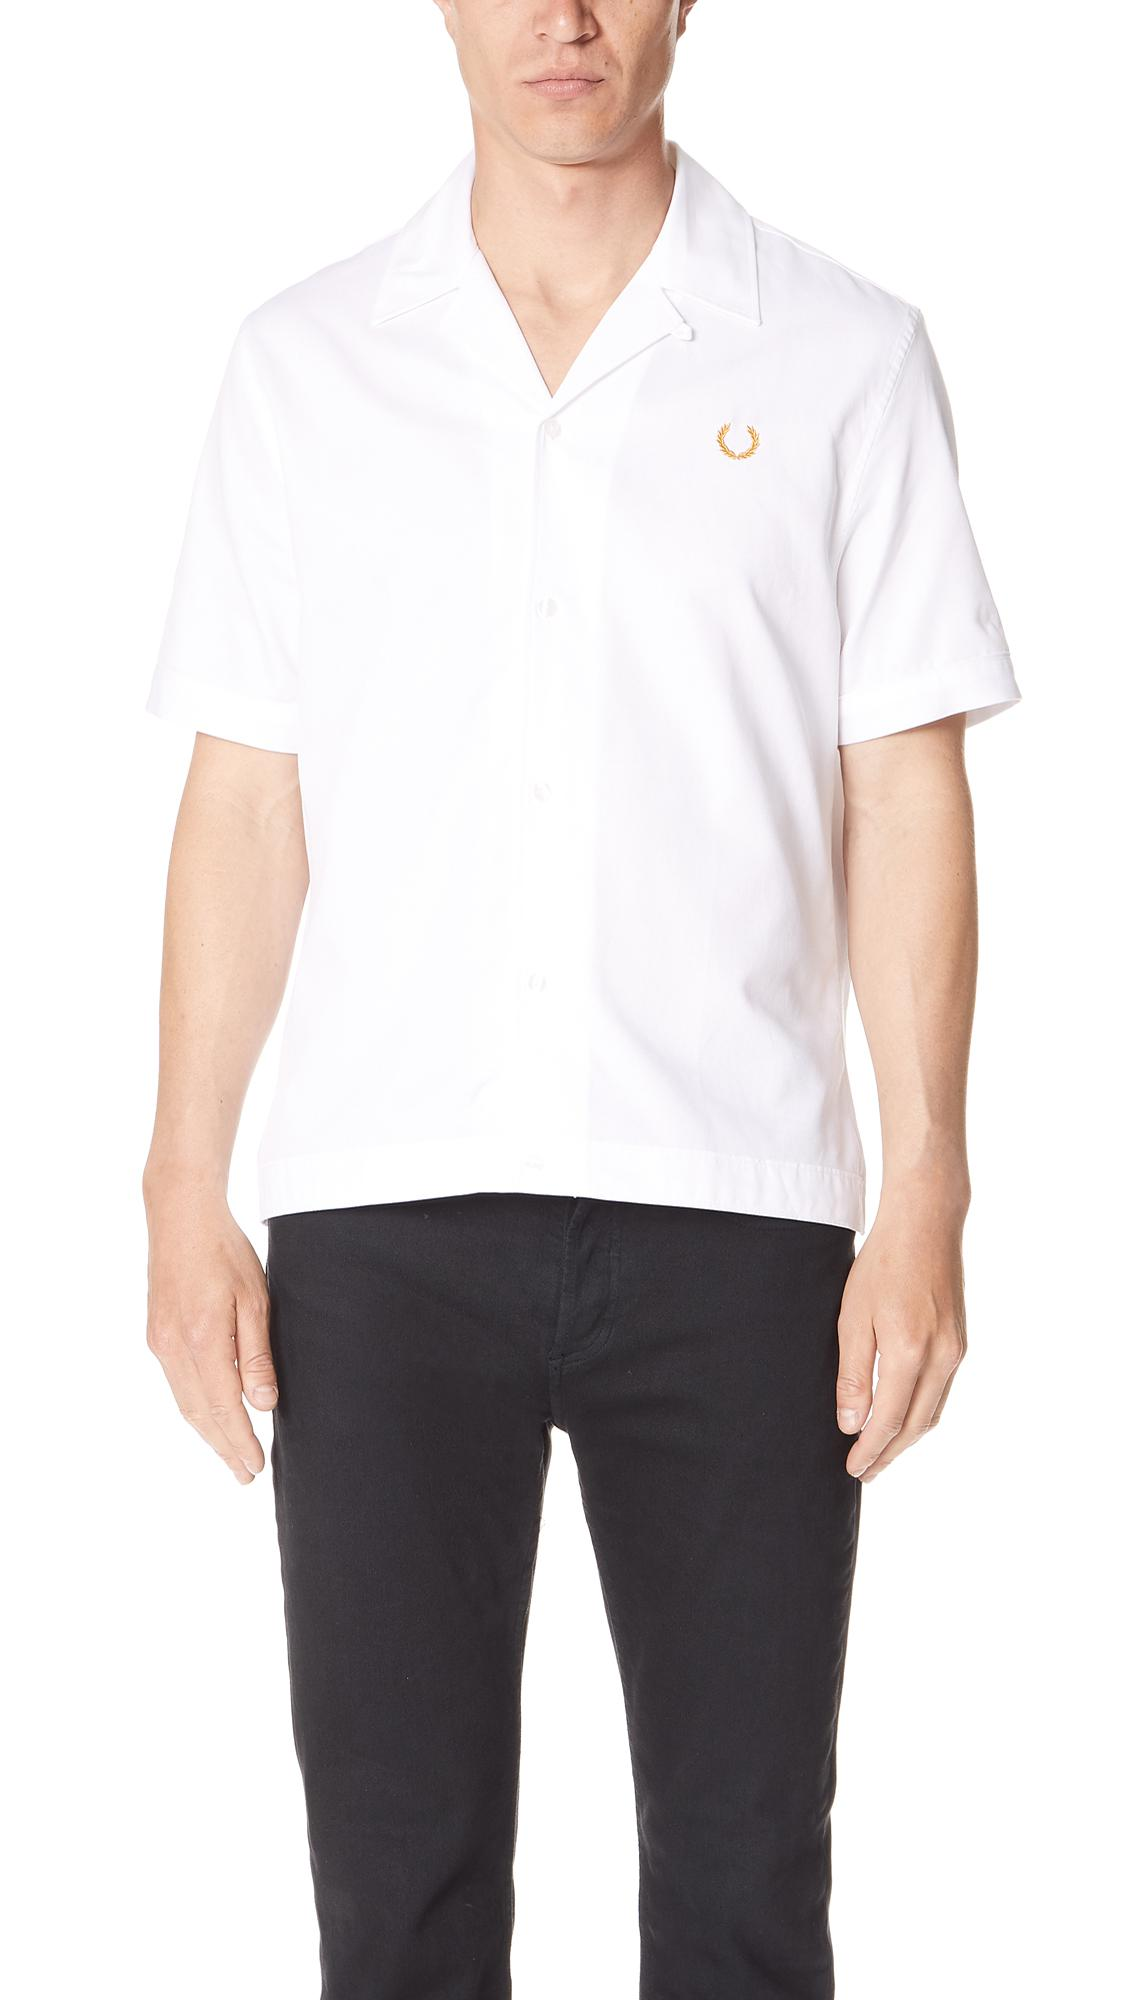 e0272df37 Fred Perry Miles Kane Bowling Shirt in White for Men - Lyst